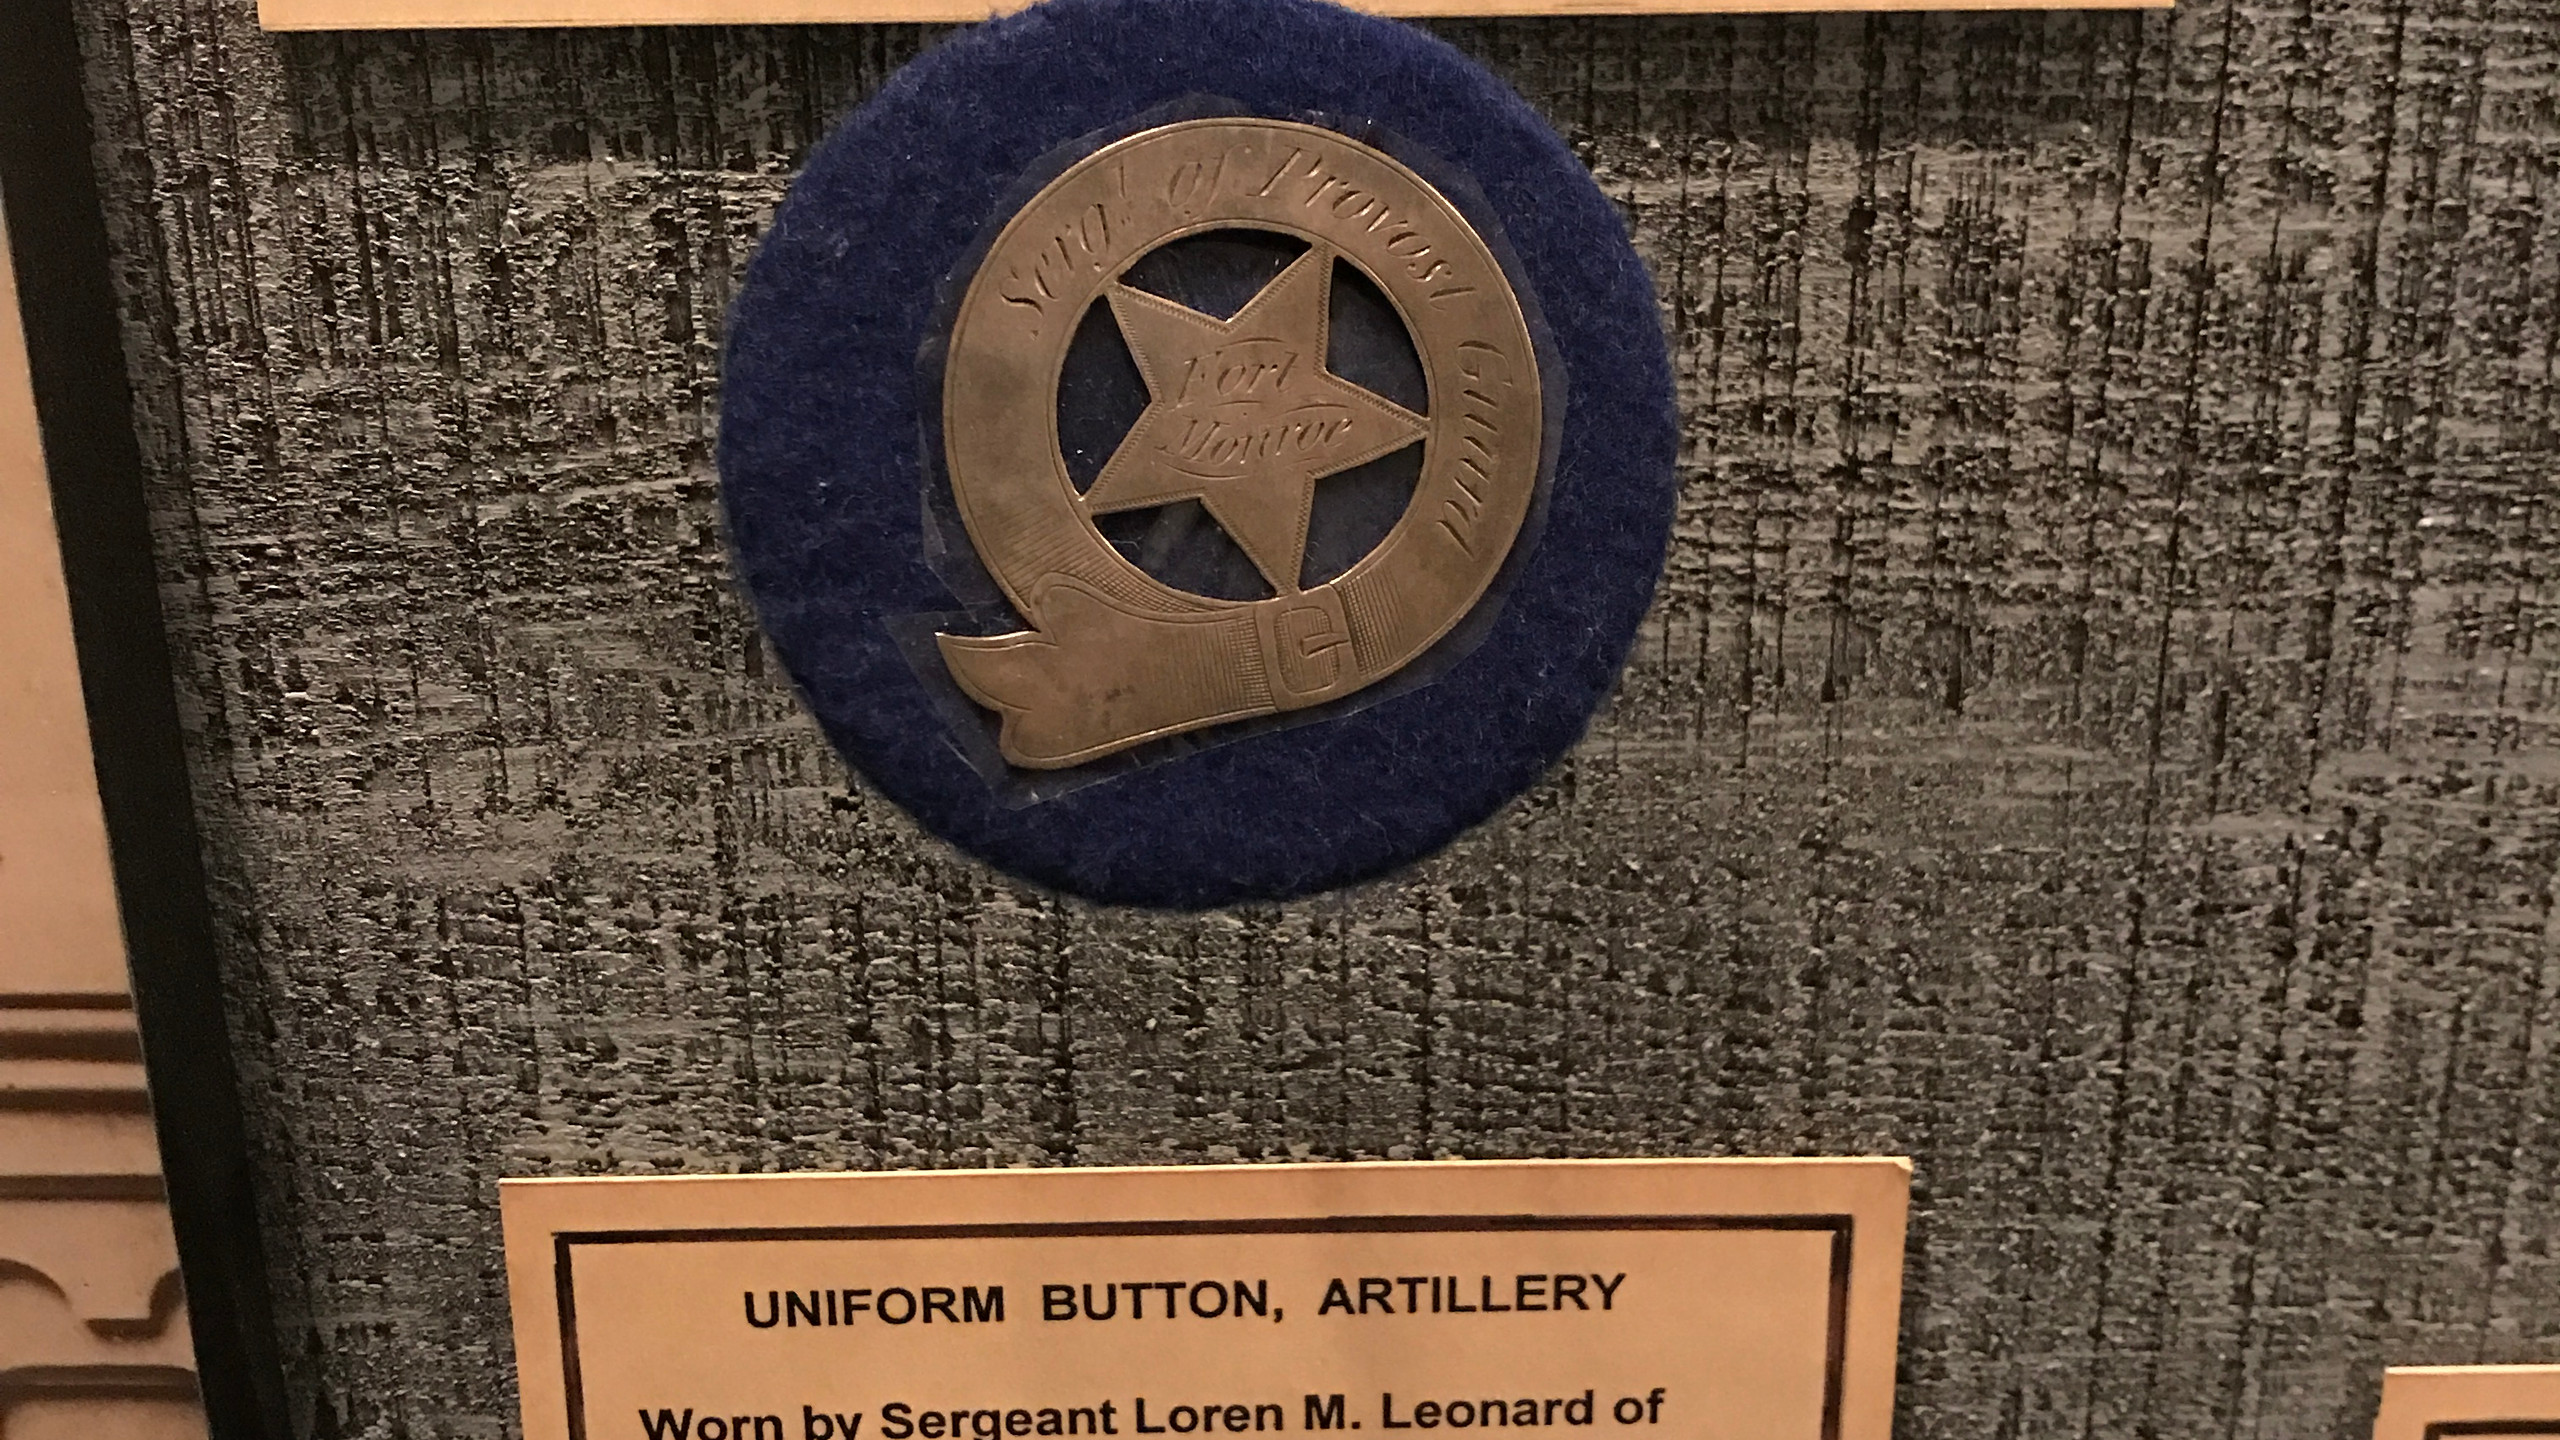 Two pieces of military history